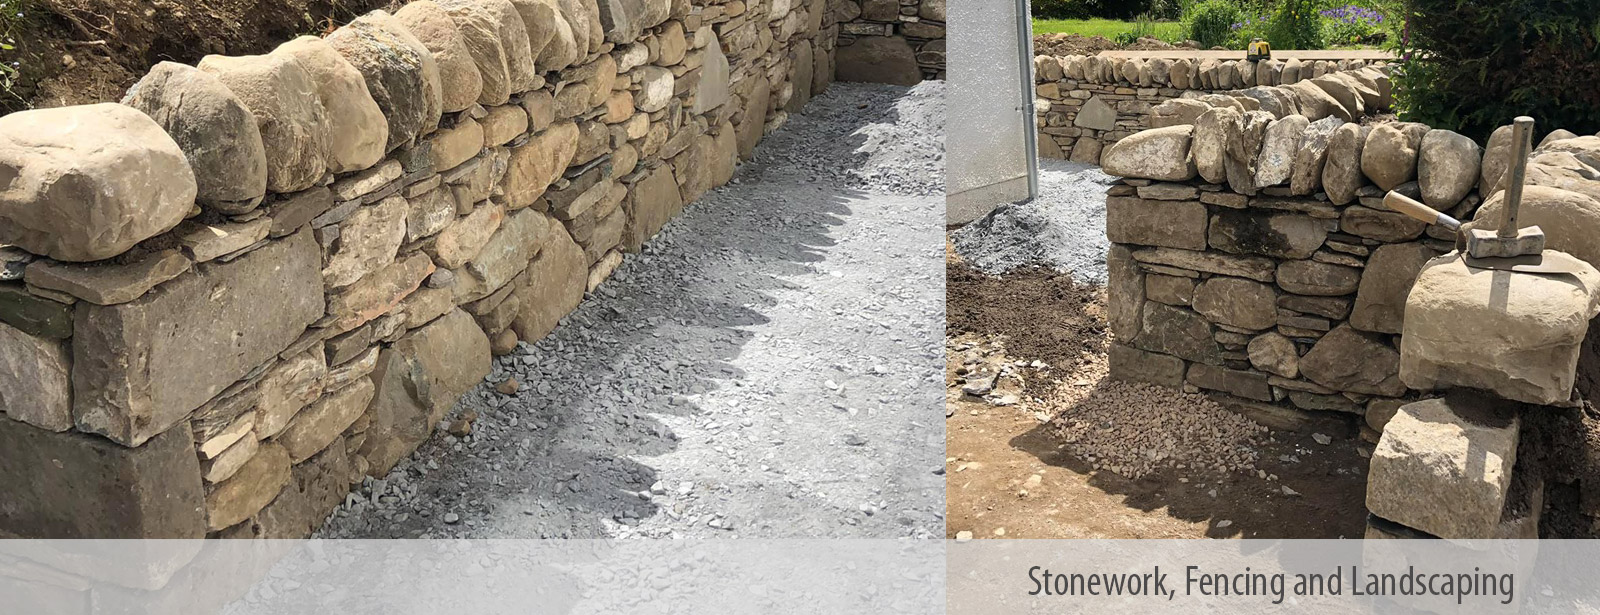 DMS Stoneworks - Stonework, Fencing and Landscaping